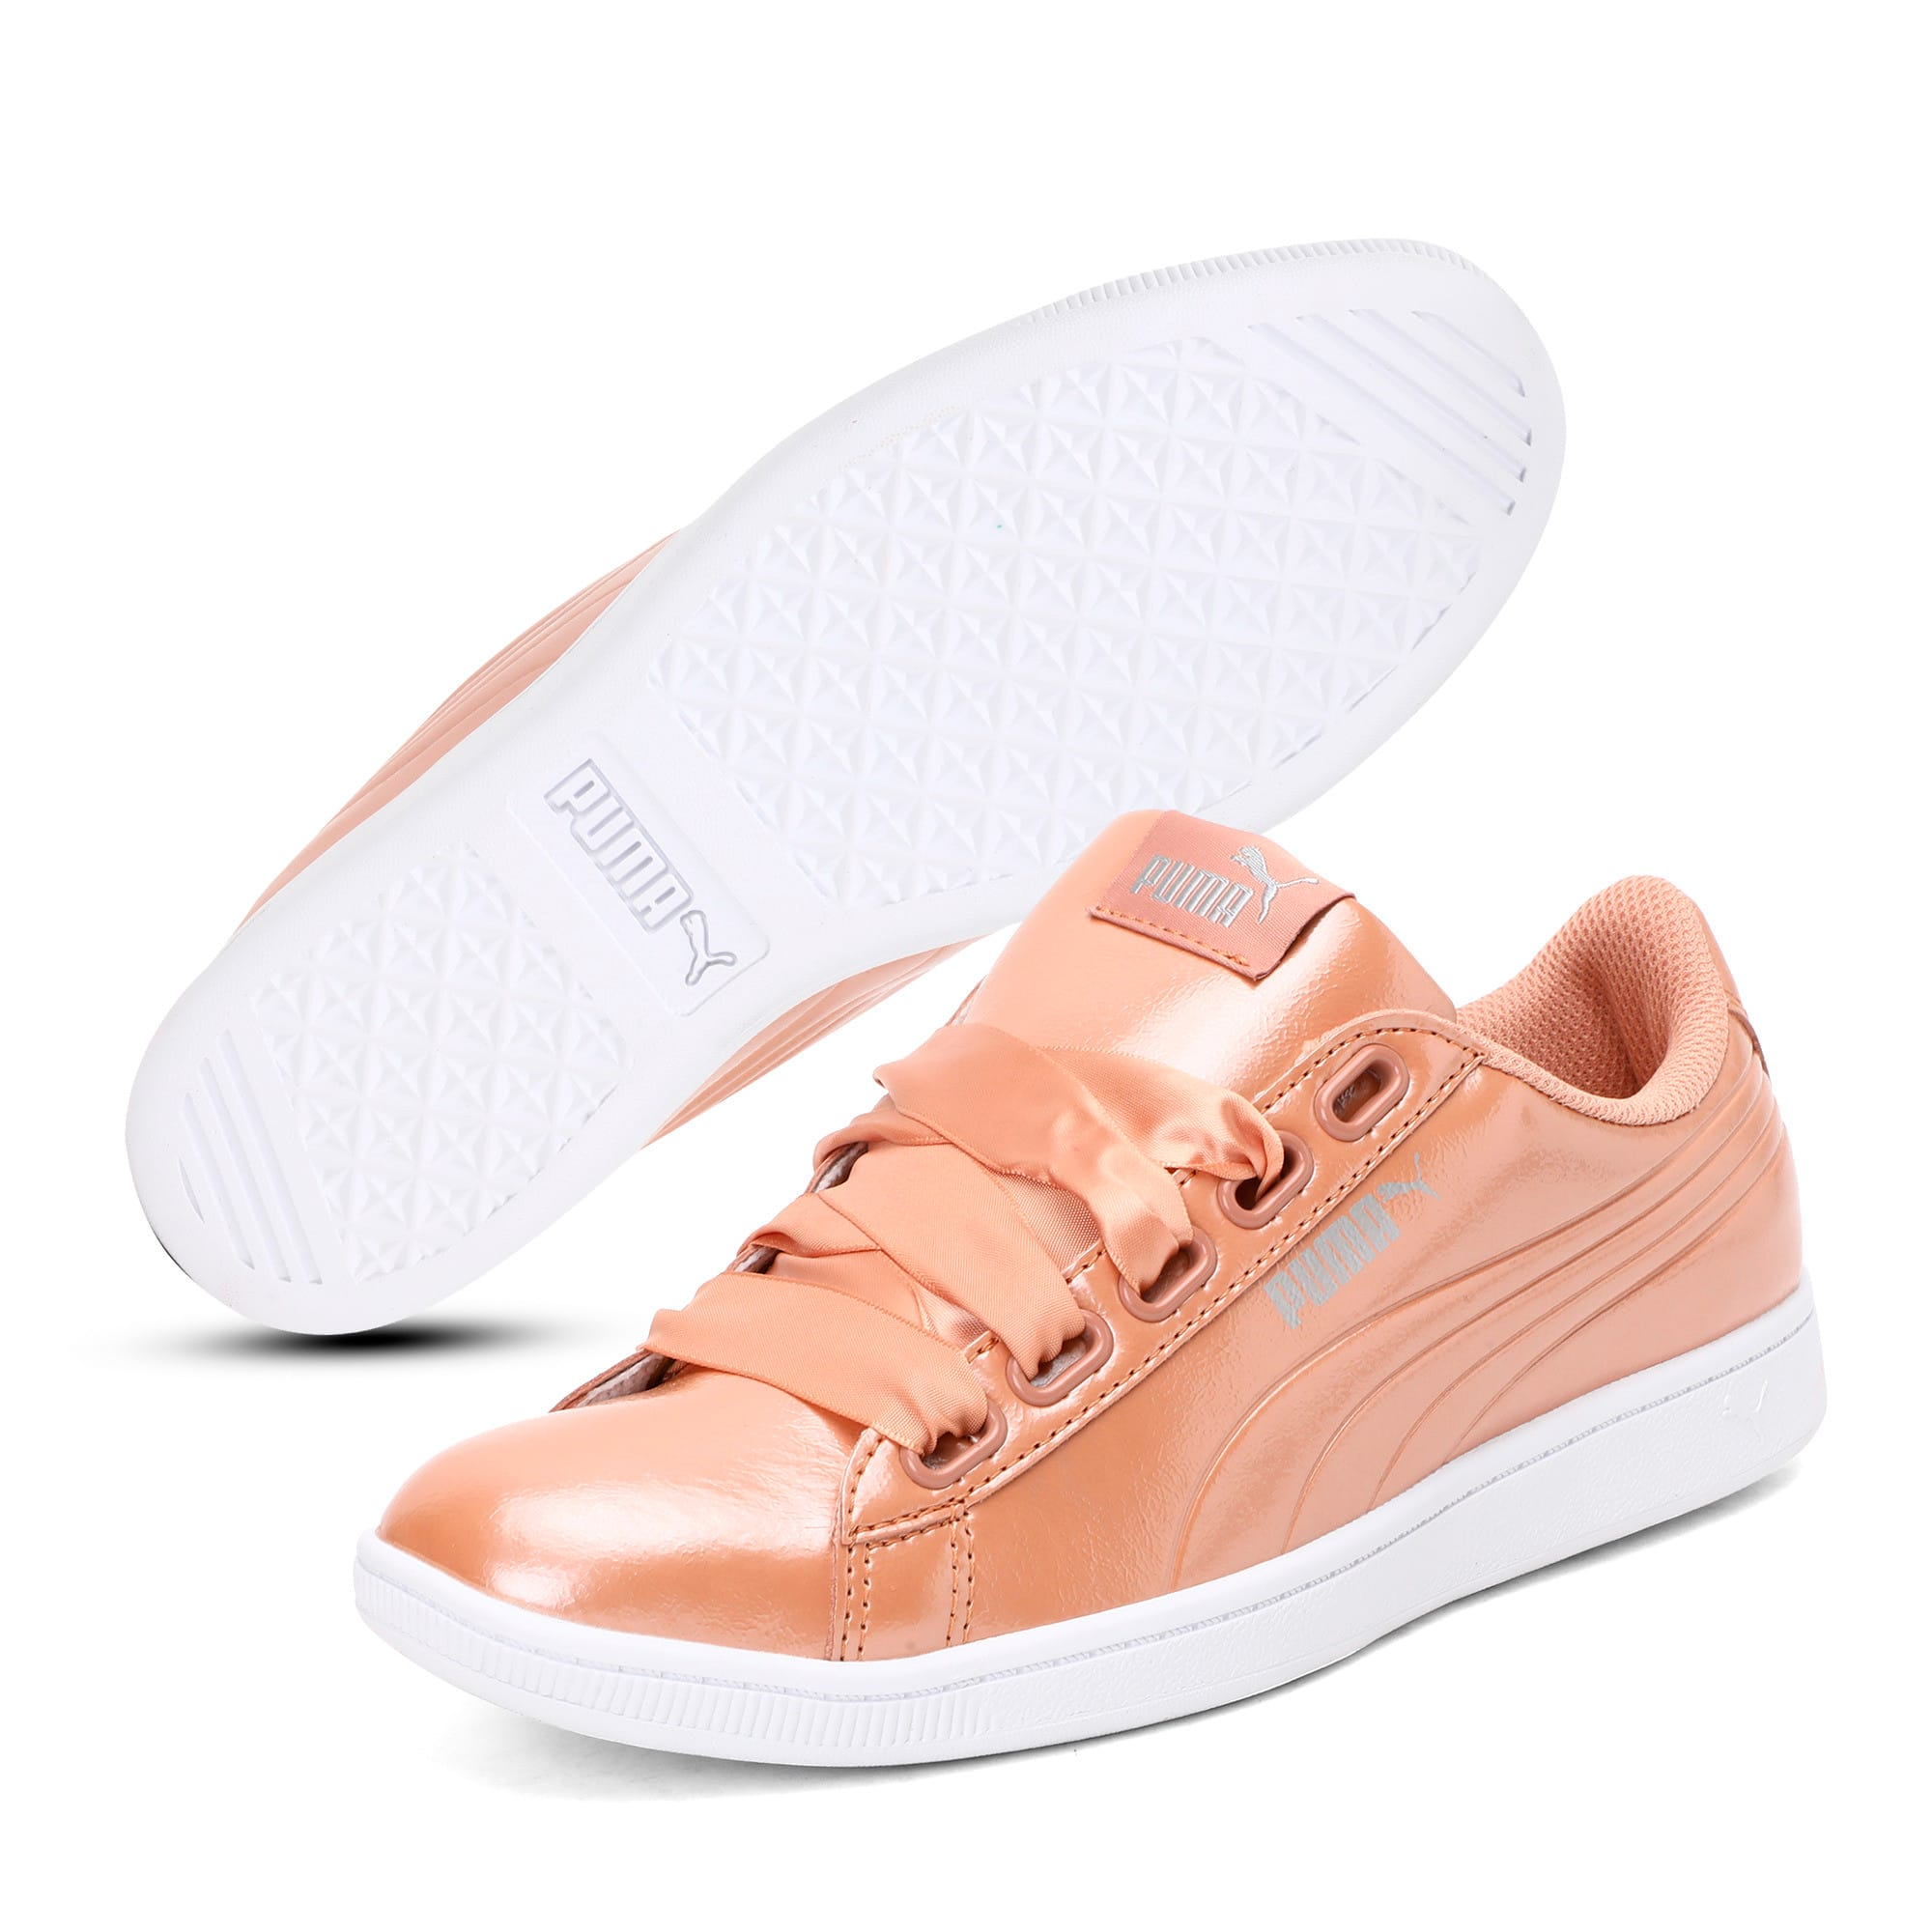 Thumbnail 2 of Vikky Ribbon Patent Women's Trainers, Dusty Coral-Dusty Coral, medium-IND